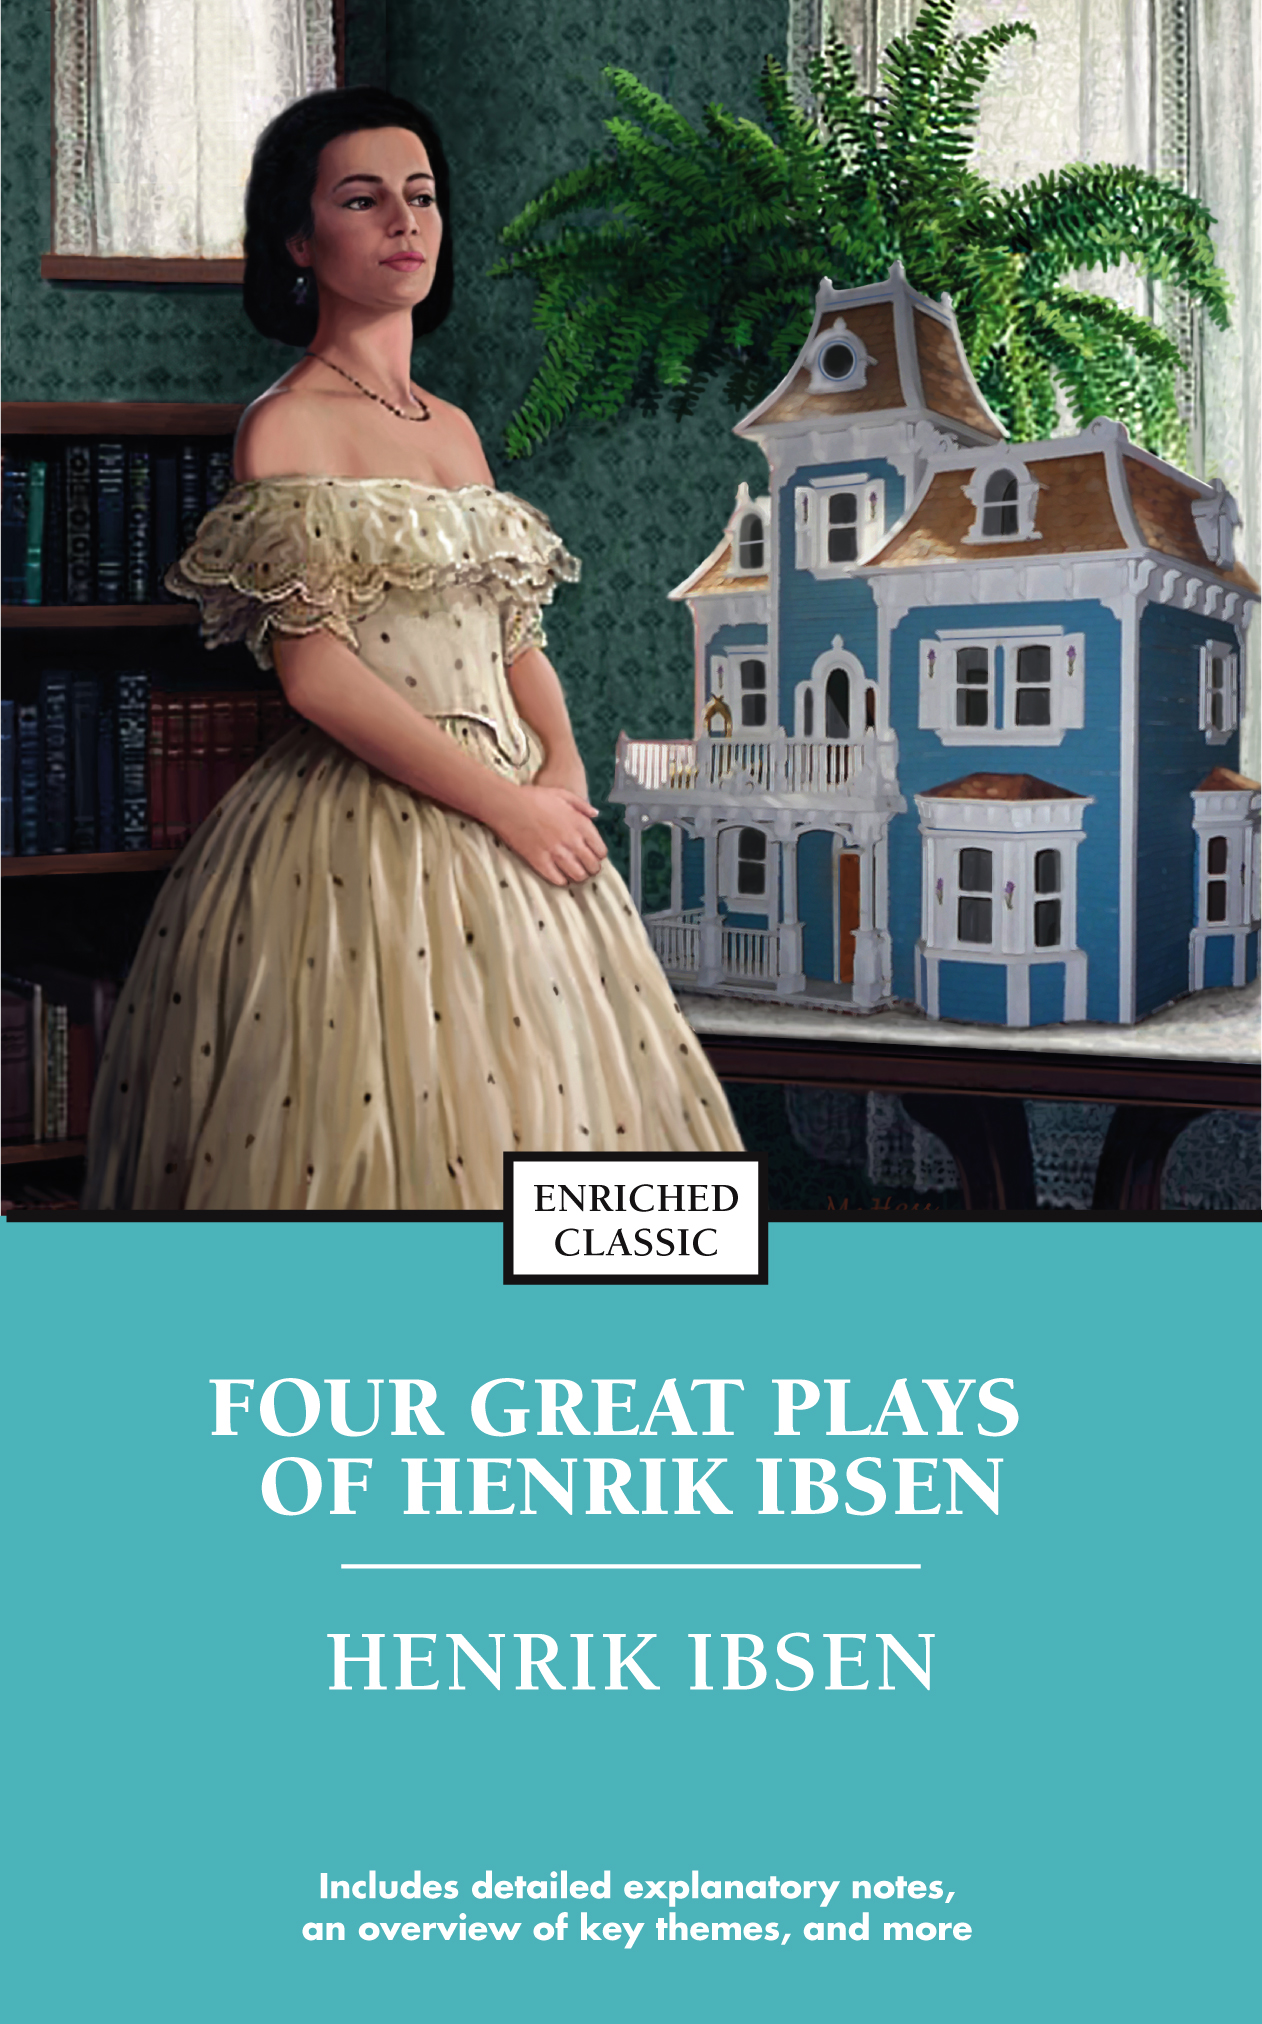 Four Major Plays, Volume 1: A Doll House/The Wild Duck/Hedda Gabler/The Master Builder